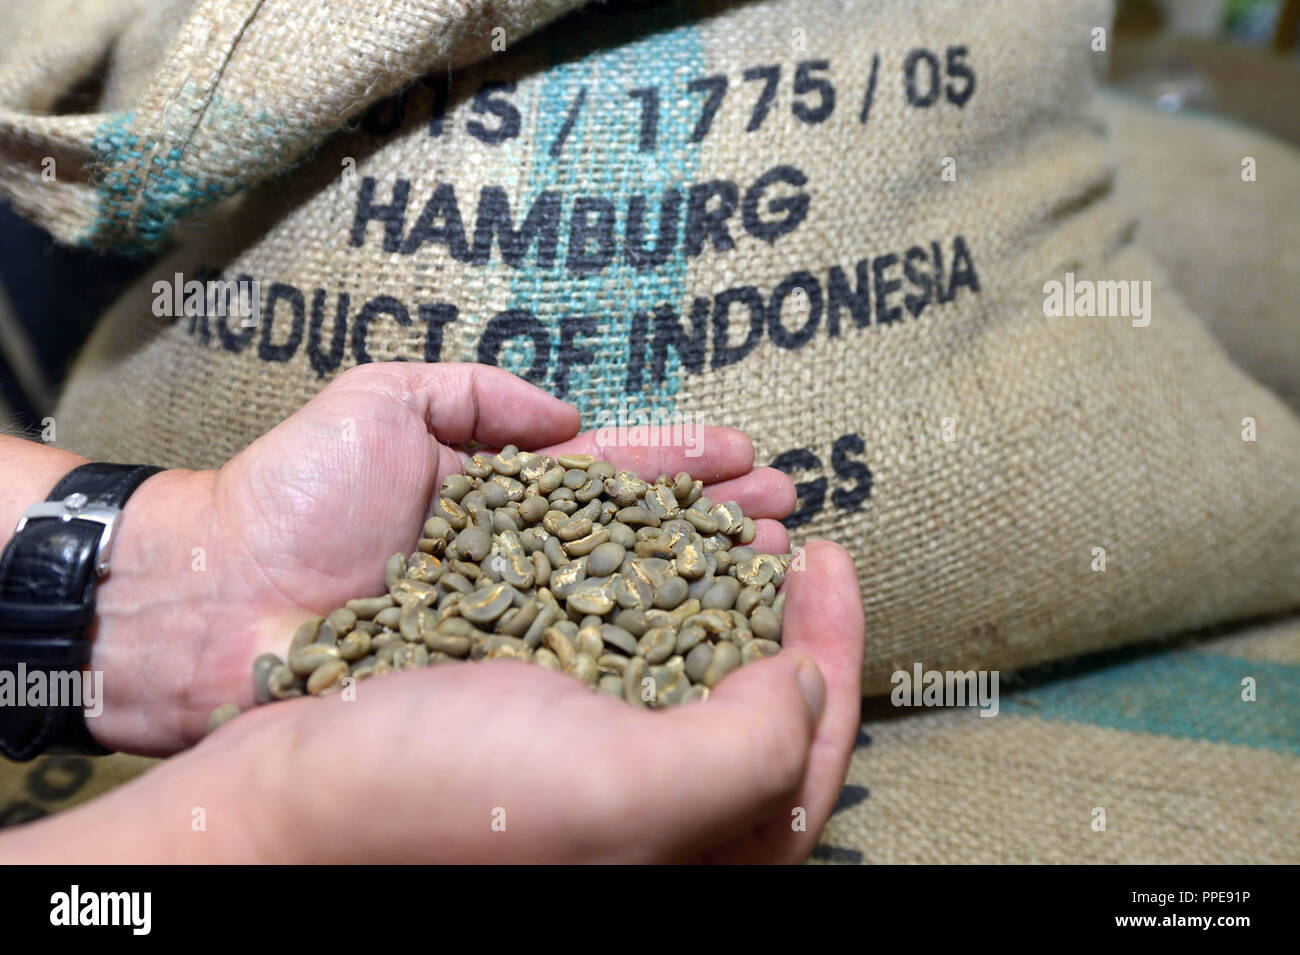 Coffee sack in the coffee roastery of Harald Faust in the Kraemer'sche Kunstmuehle. - Stock Image